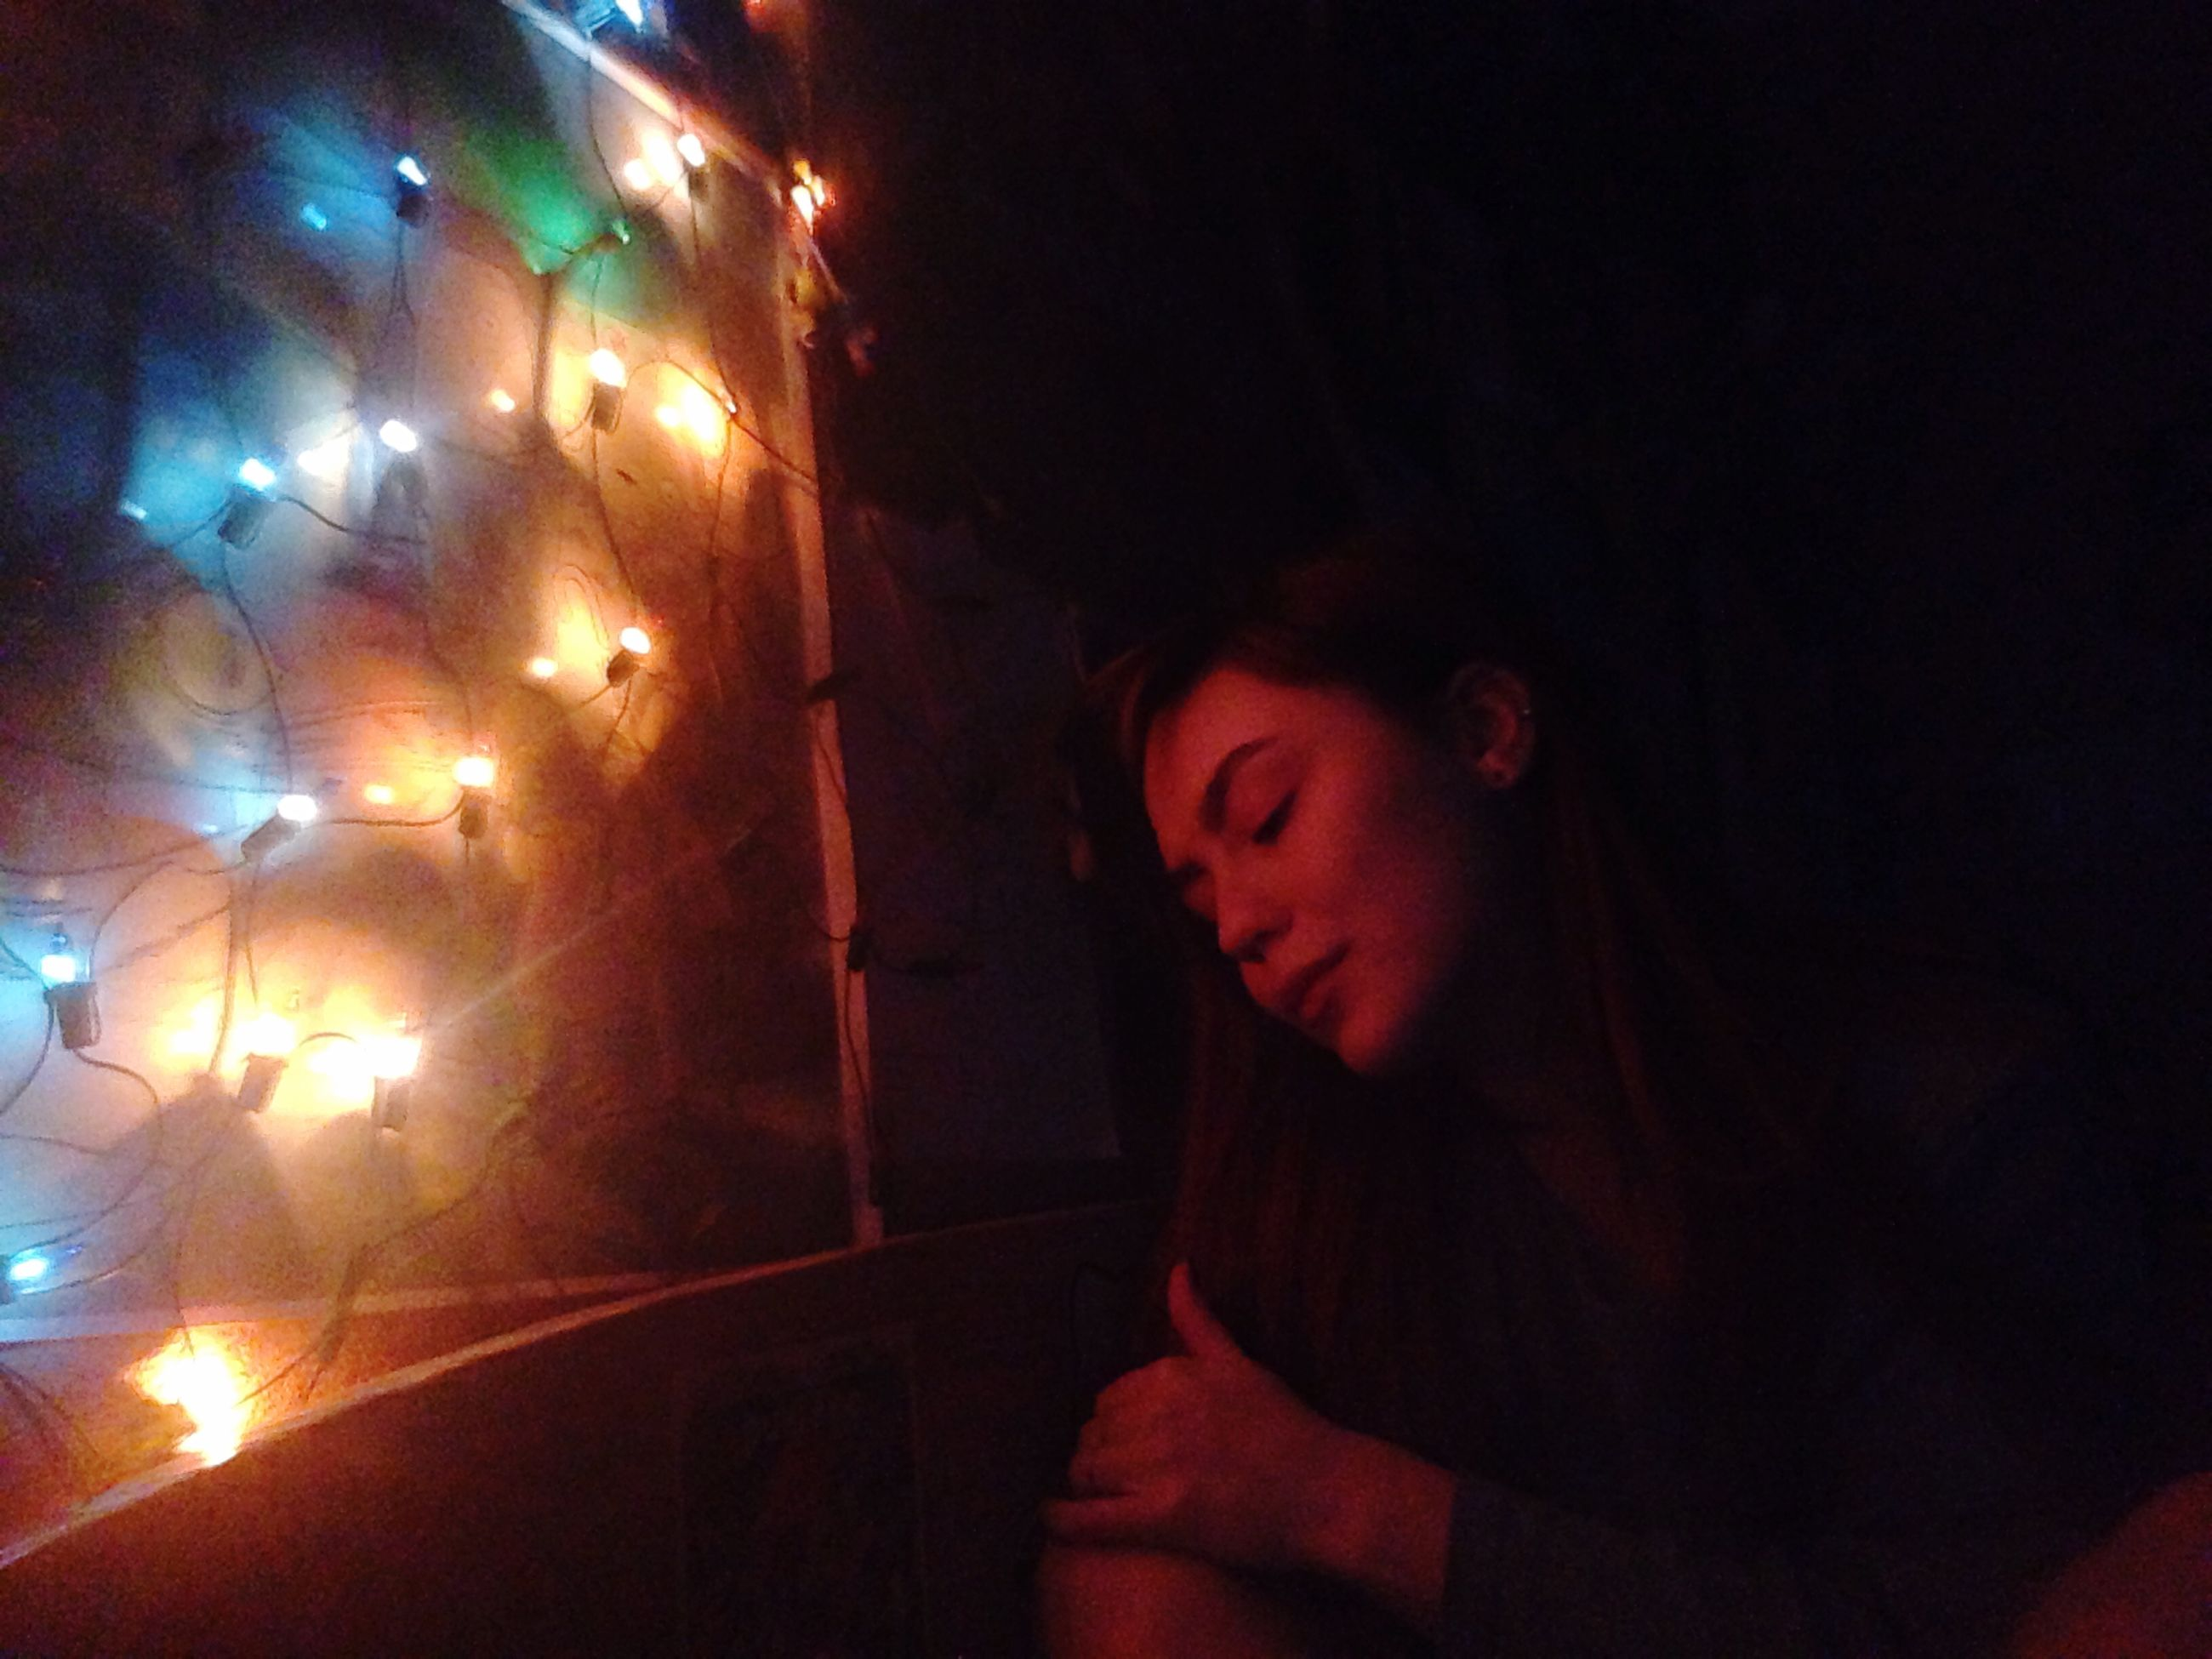 night, illuminated, indoors, real people, one person, lifestyles, leisure activity, young adult, young women, close-up, people